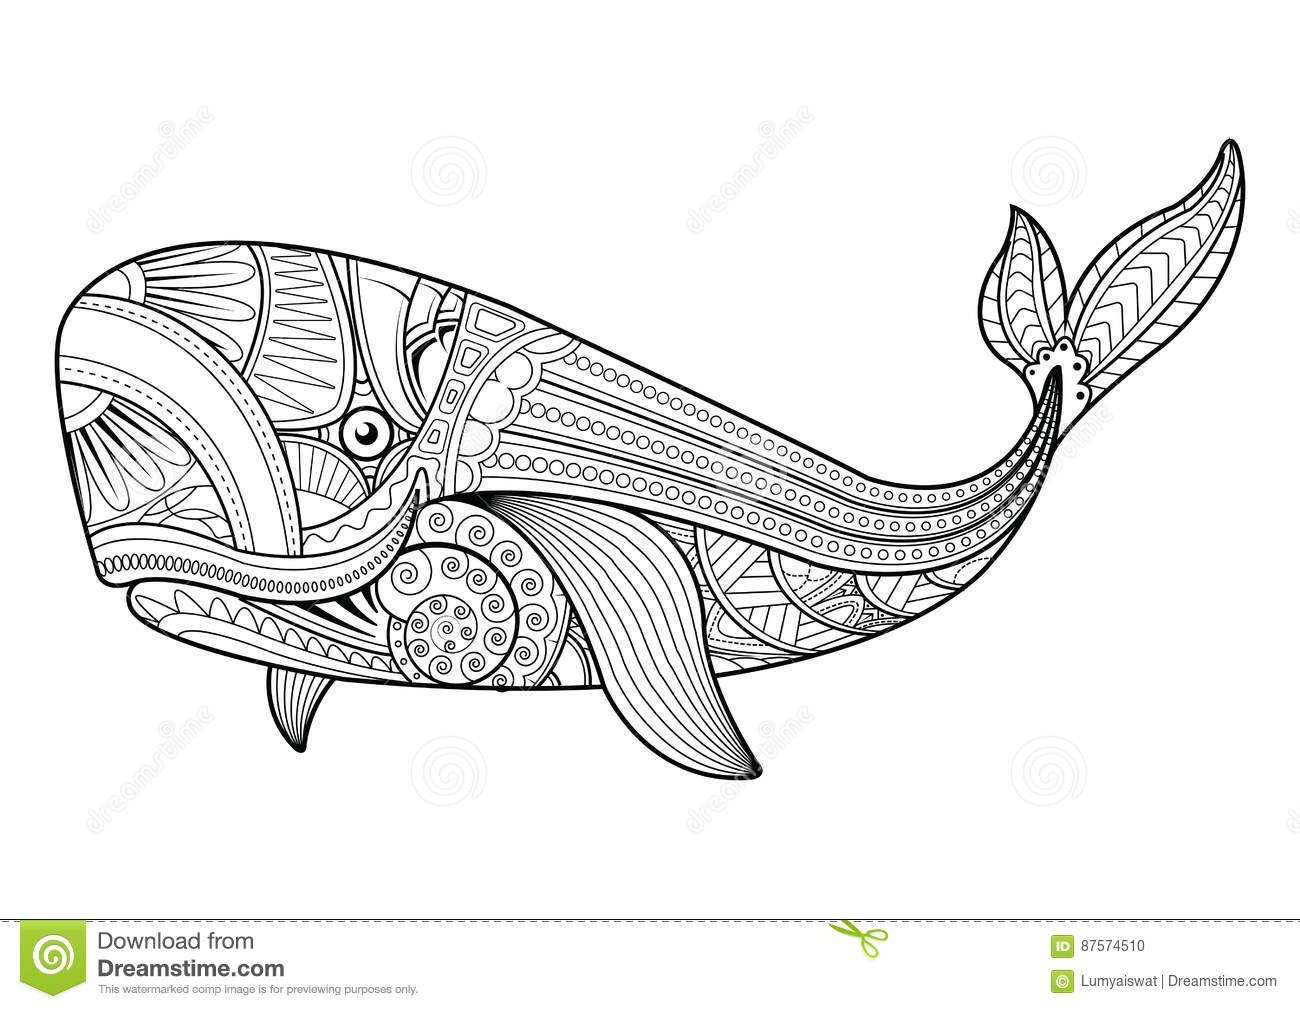 vector illustration of whale coloring pages - Whale Coloring Pages